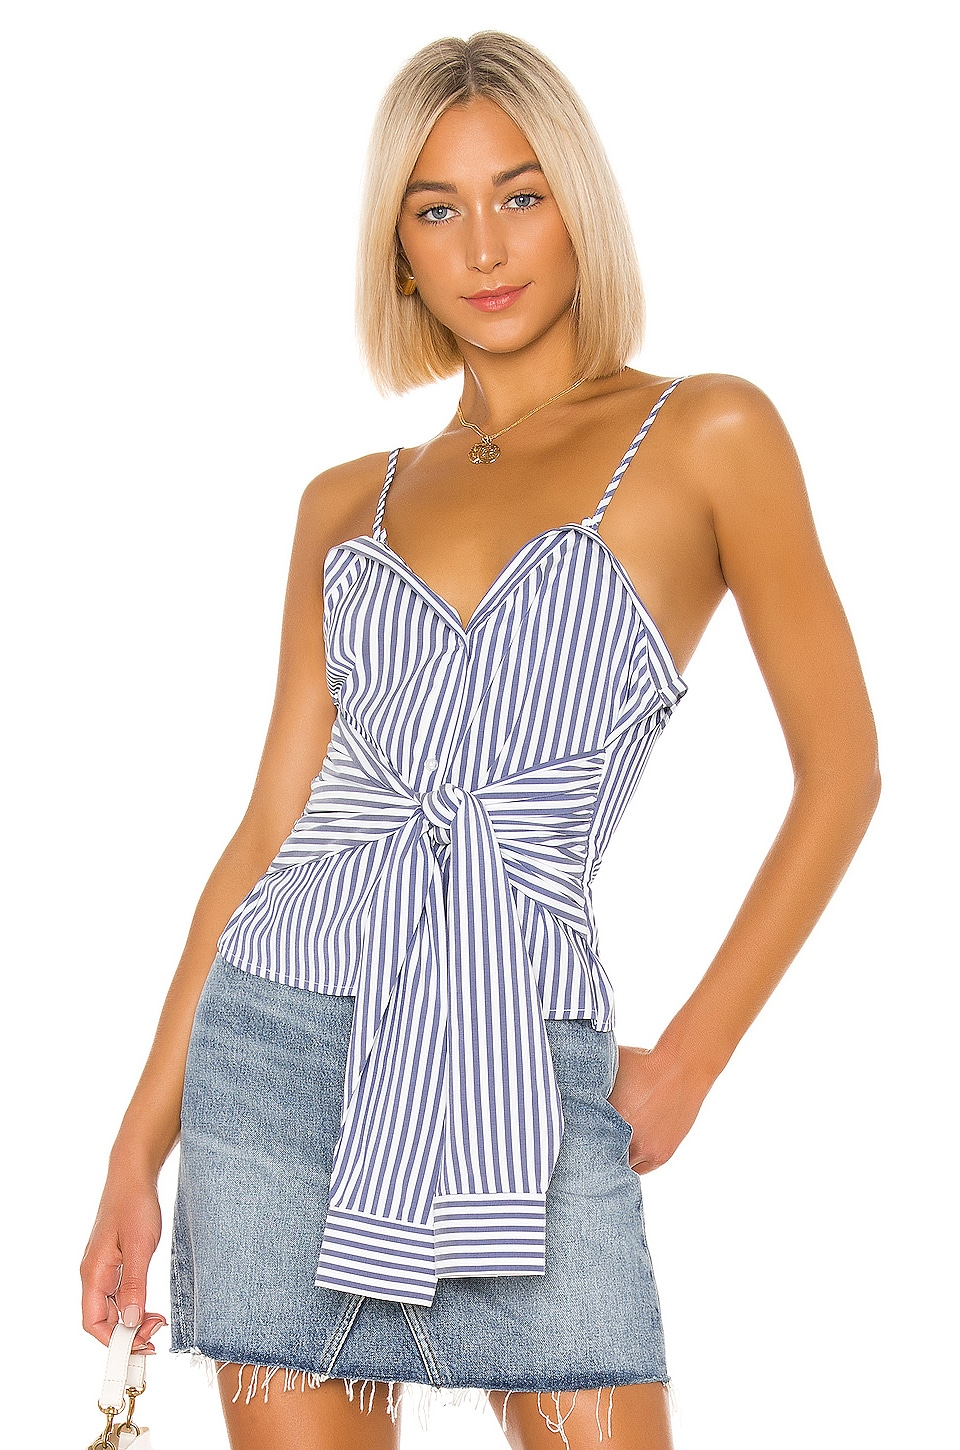 L'Academie The Evy Top in Blue & White